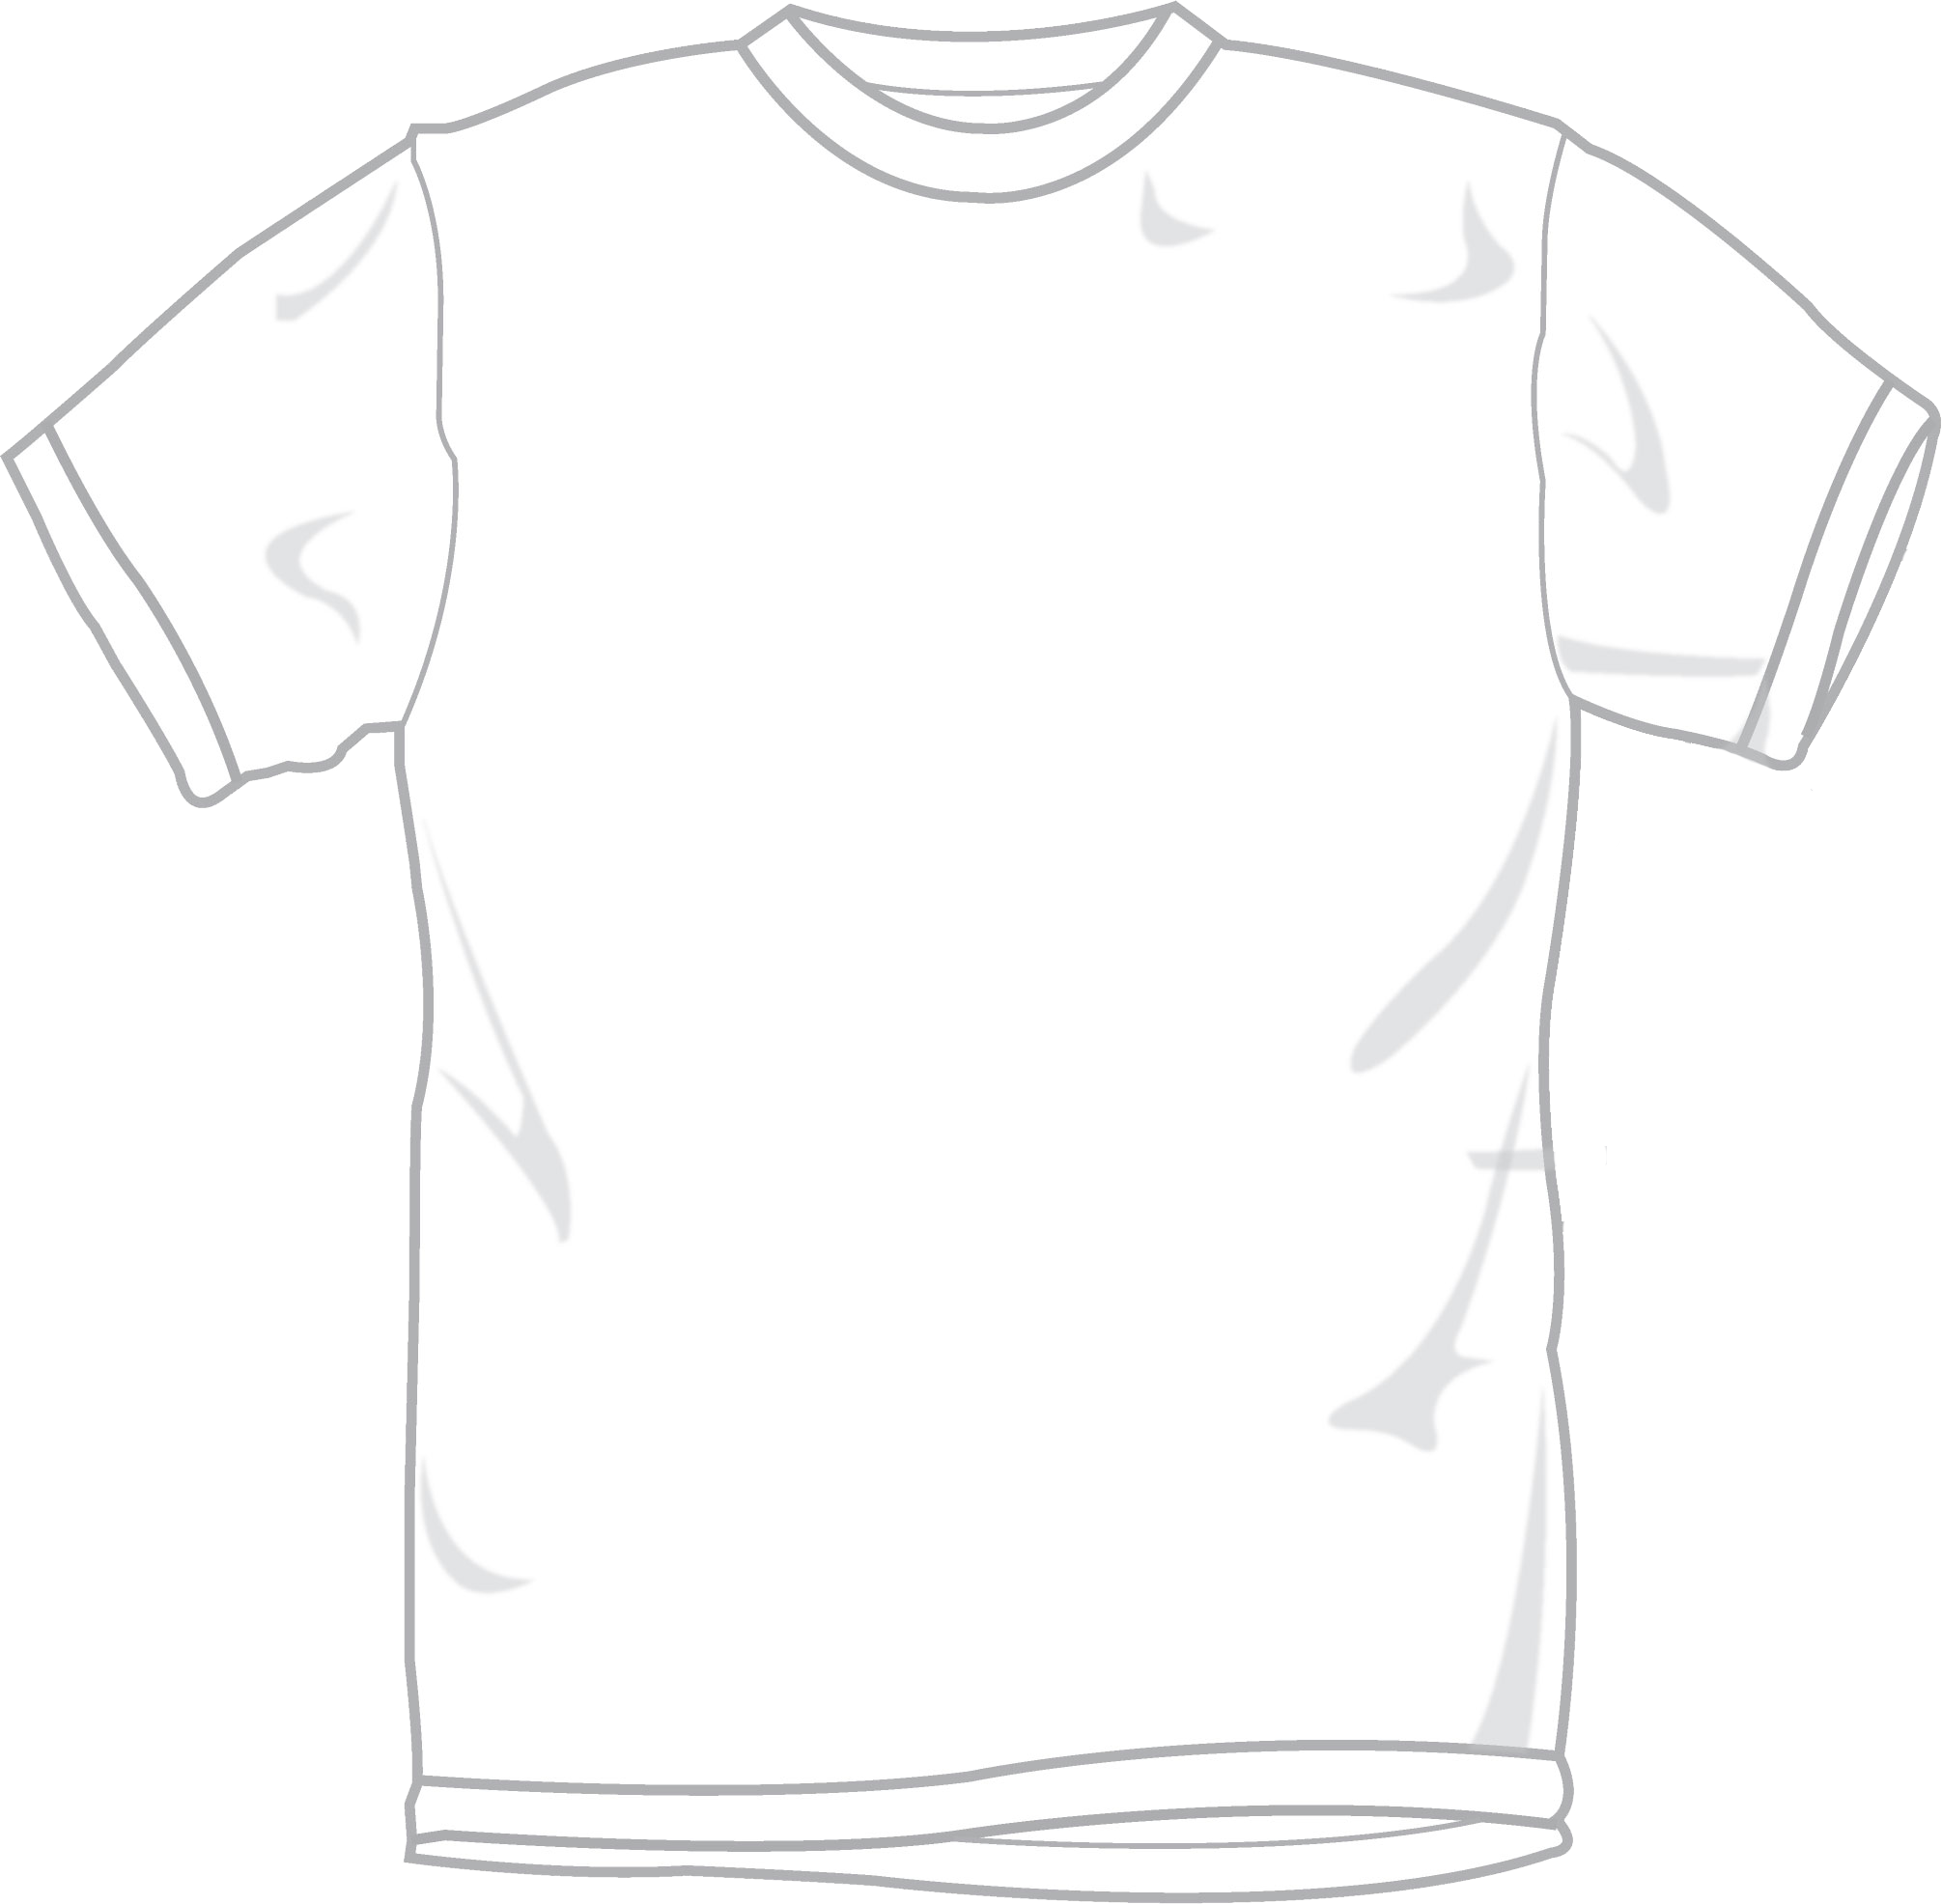 White t shirt template png. Business templates